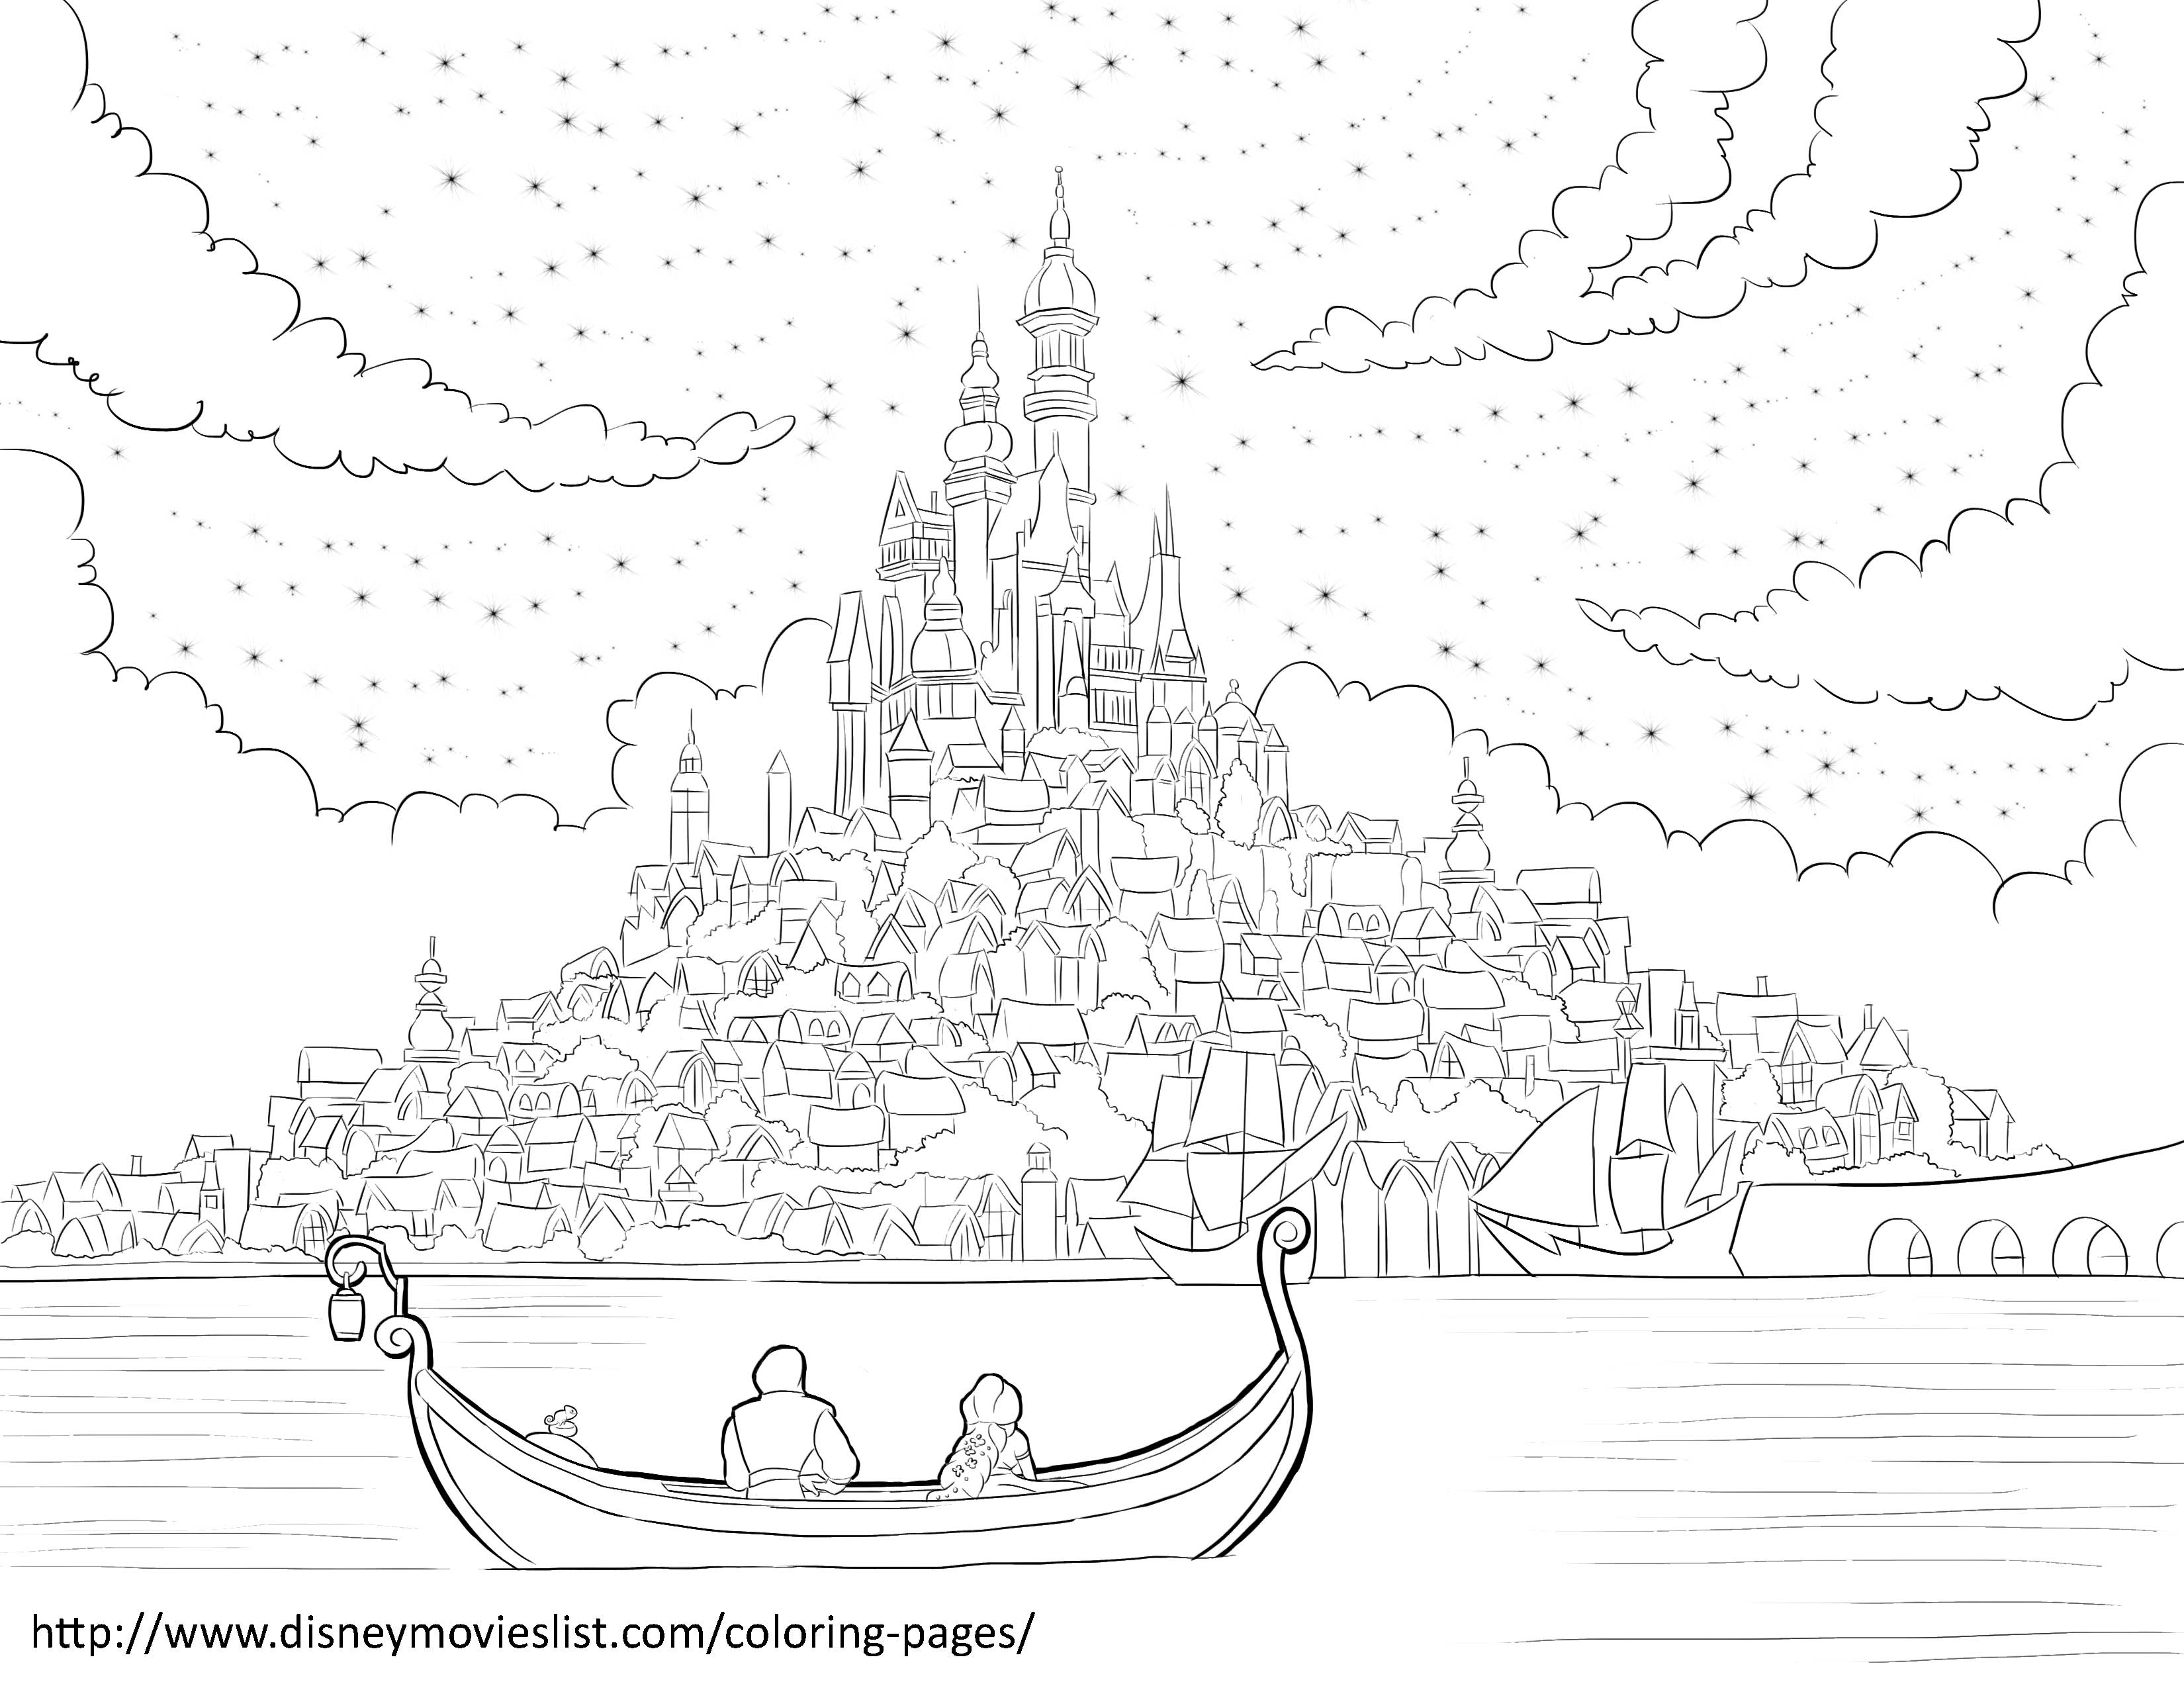 Rapunzel Tower Drawing at GetDrawings.com | Free for personal use ...